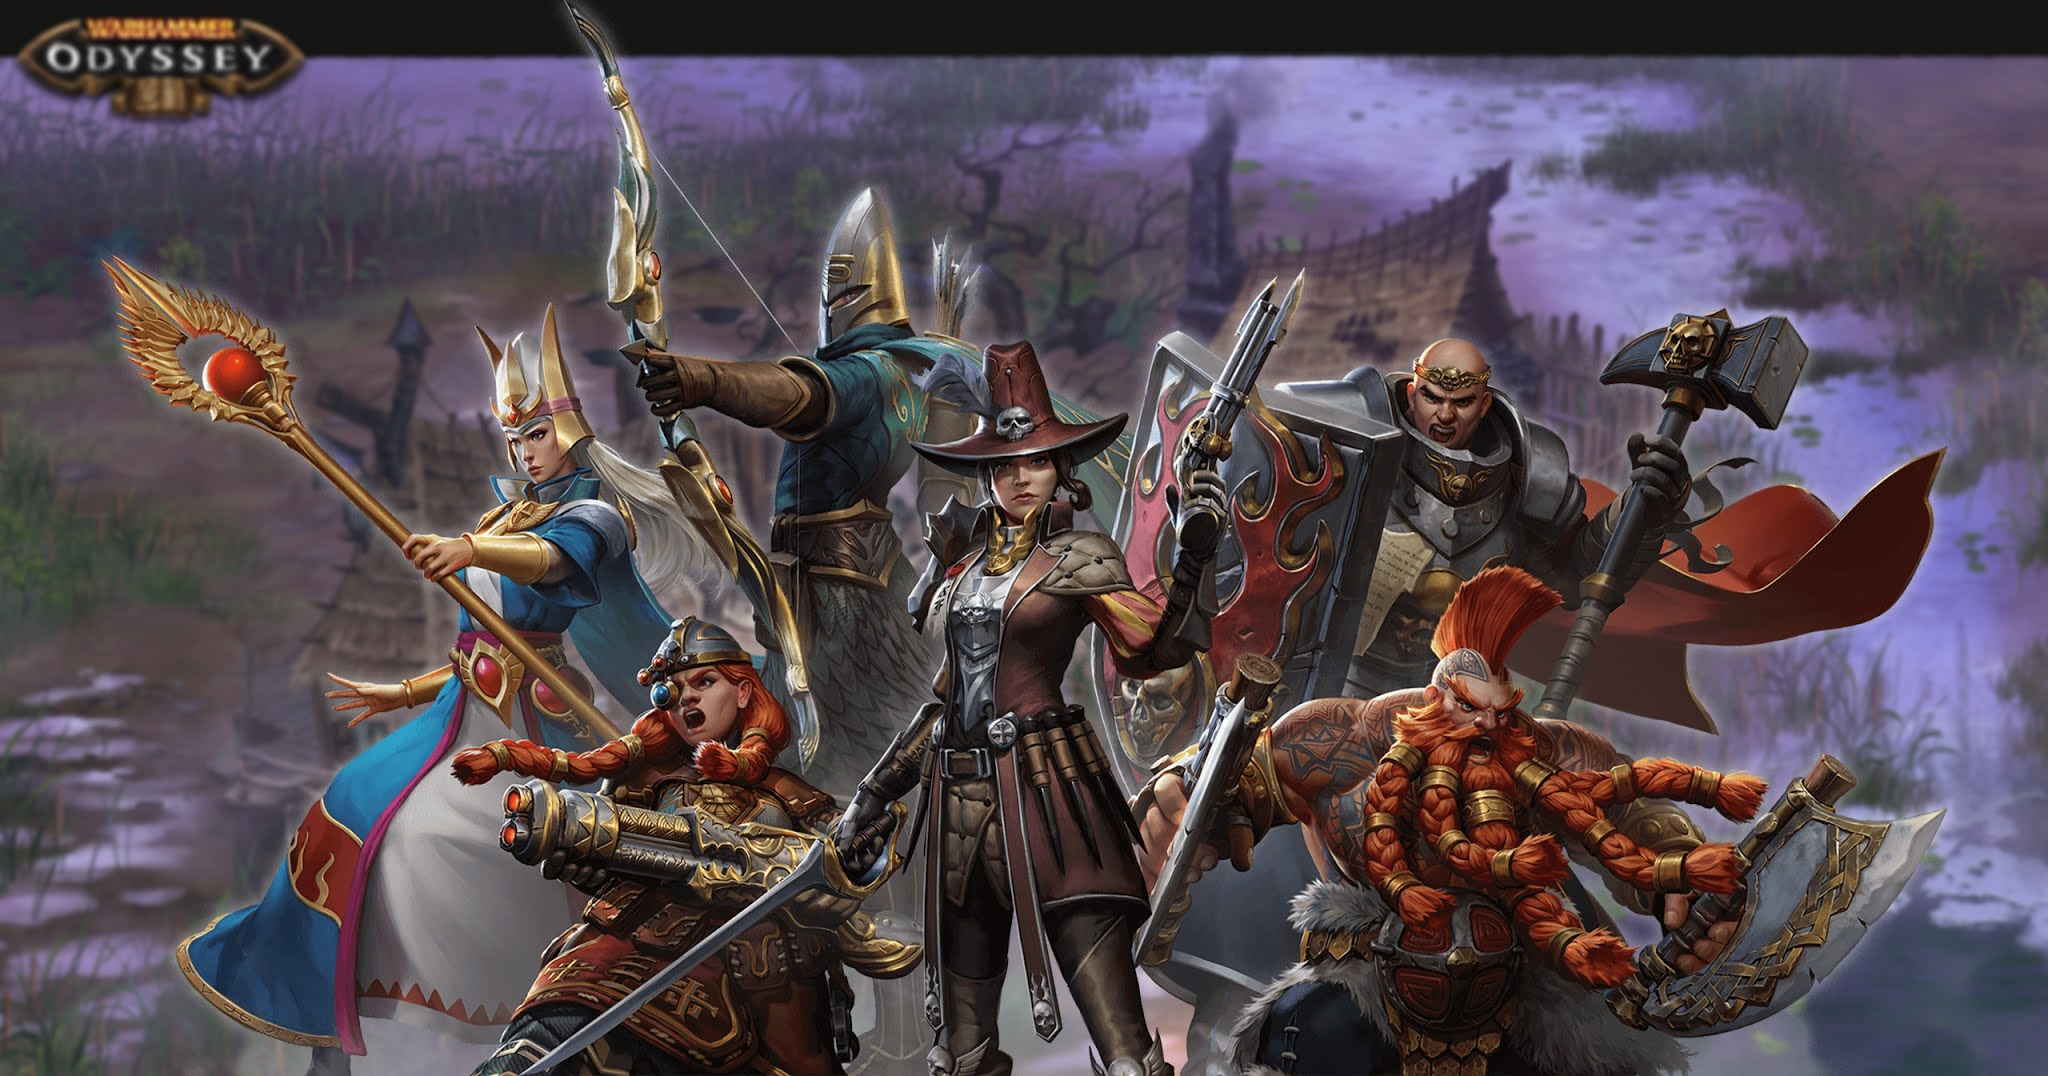 Warhammer: Odyssey. Which class should you choose?